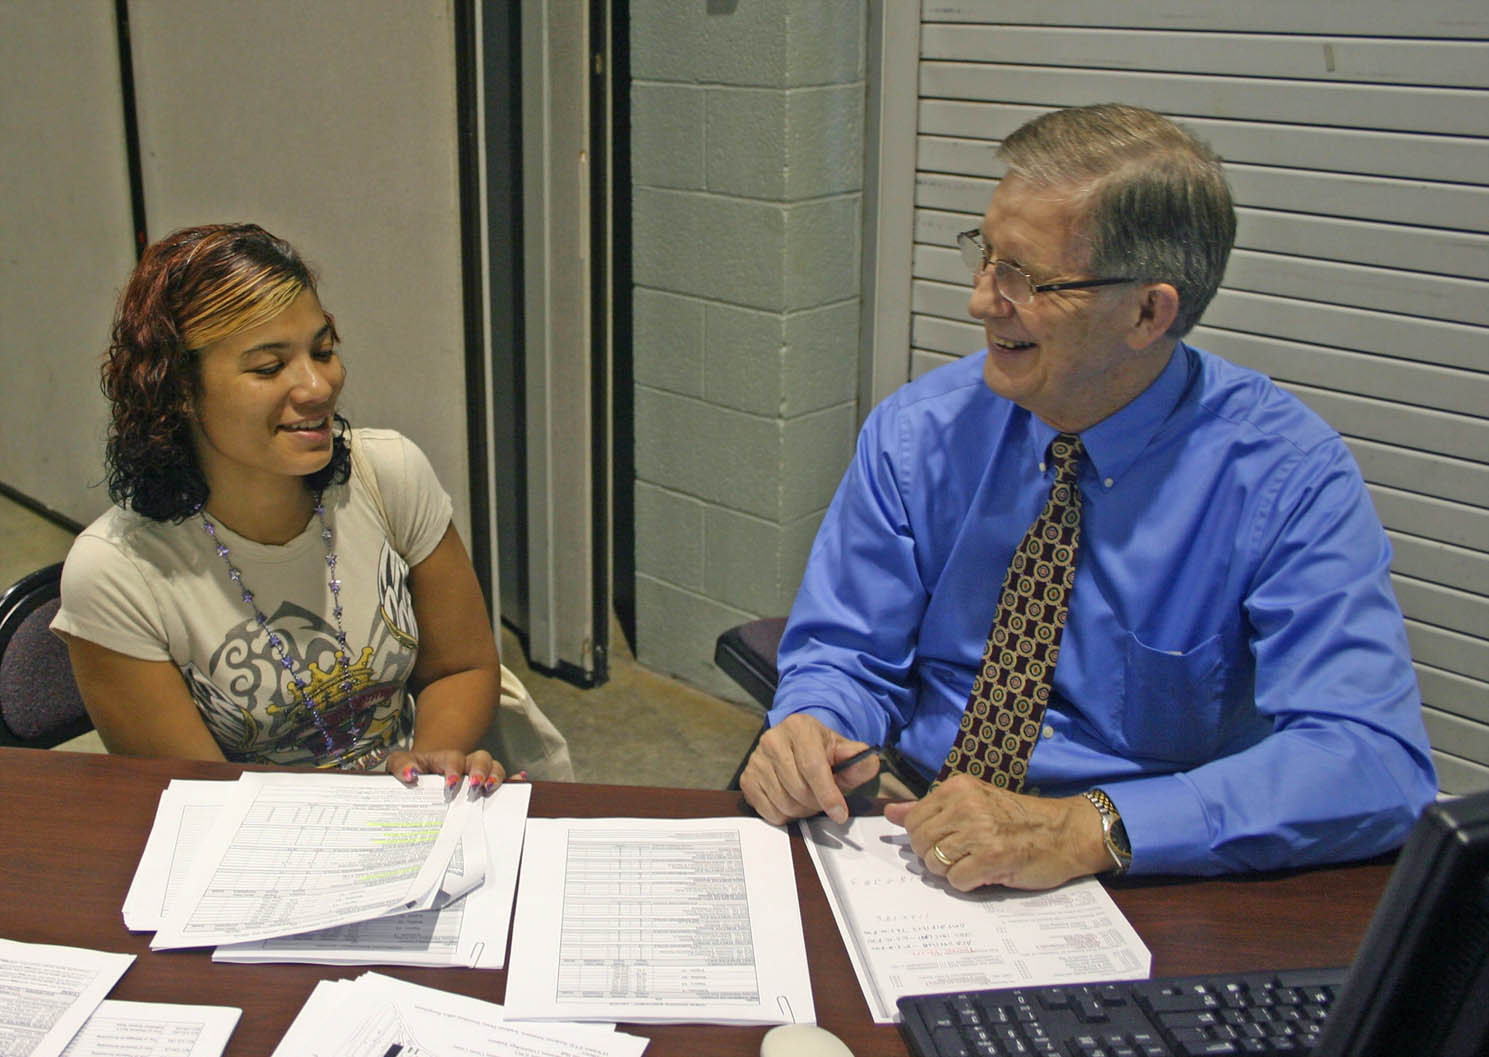 Click to enlarge,  Sharonda Woods (left), of Sanford, discusses her Business Administration class schedule with George Clayton, Central Carolina Community College lead instructor for Business Technologies, during the college's fall semester Open Registration Tuesday, Aug. 17, at the Dennis A. Wicker Civic Center. Fall classes begin Monday, Aug. 23. Late registration extends through 3 p.m. Friday, Aug. 27, at the college's campuses in Chatham, Harnett and Lee counties. For more information on registering or classes, visit the college's Web site,  www.cccc.edu .